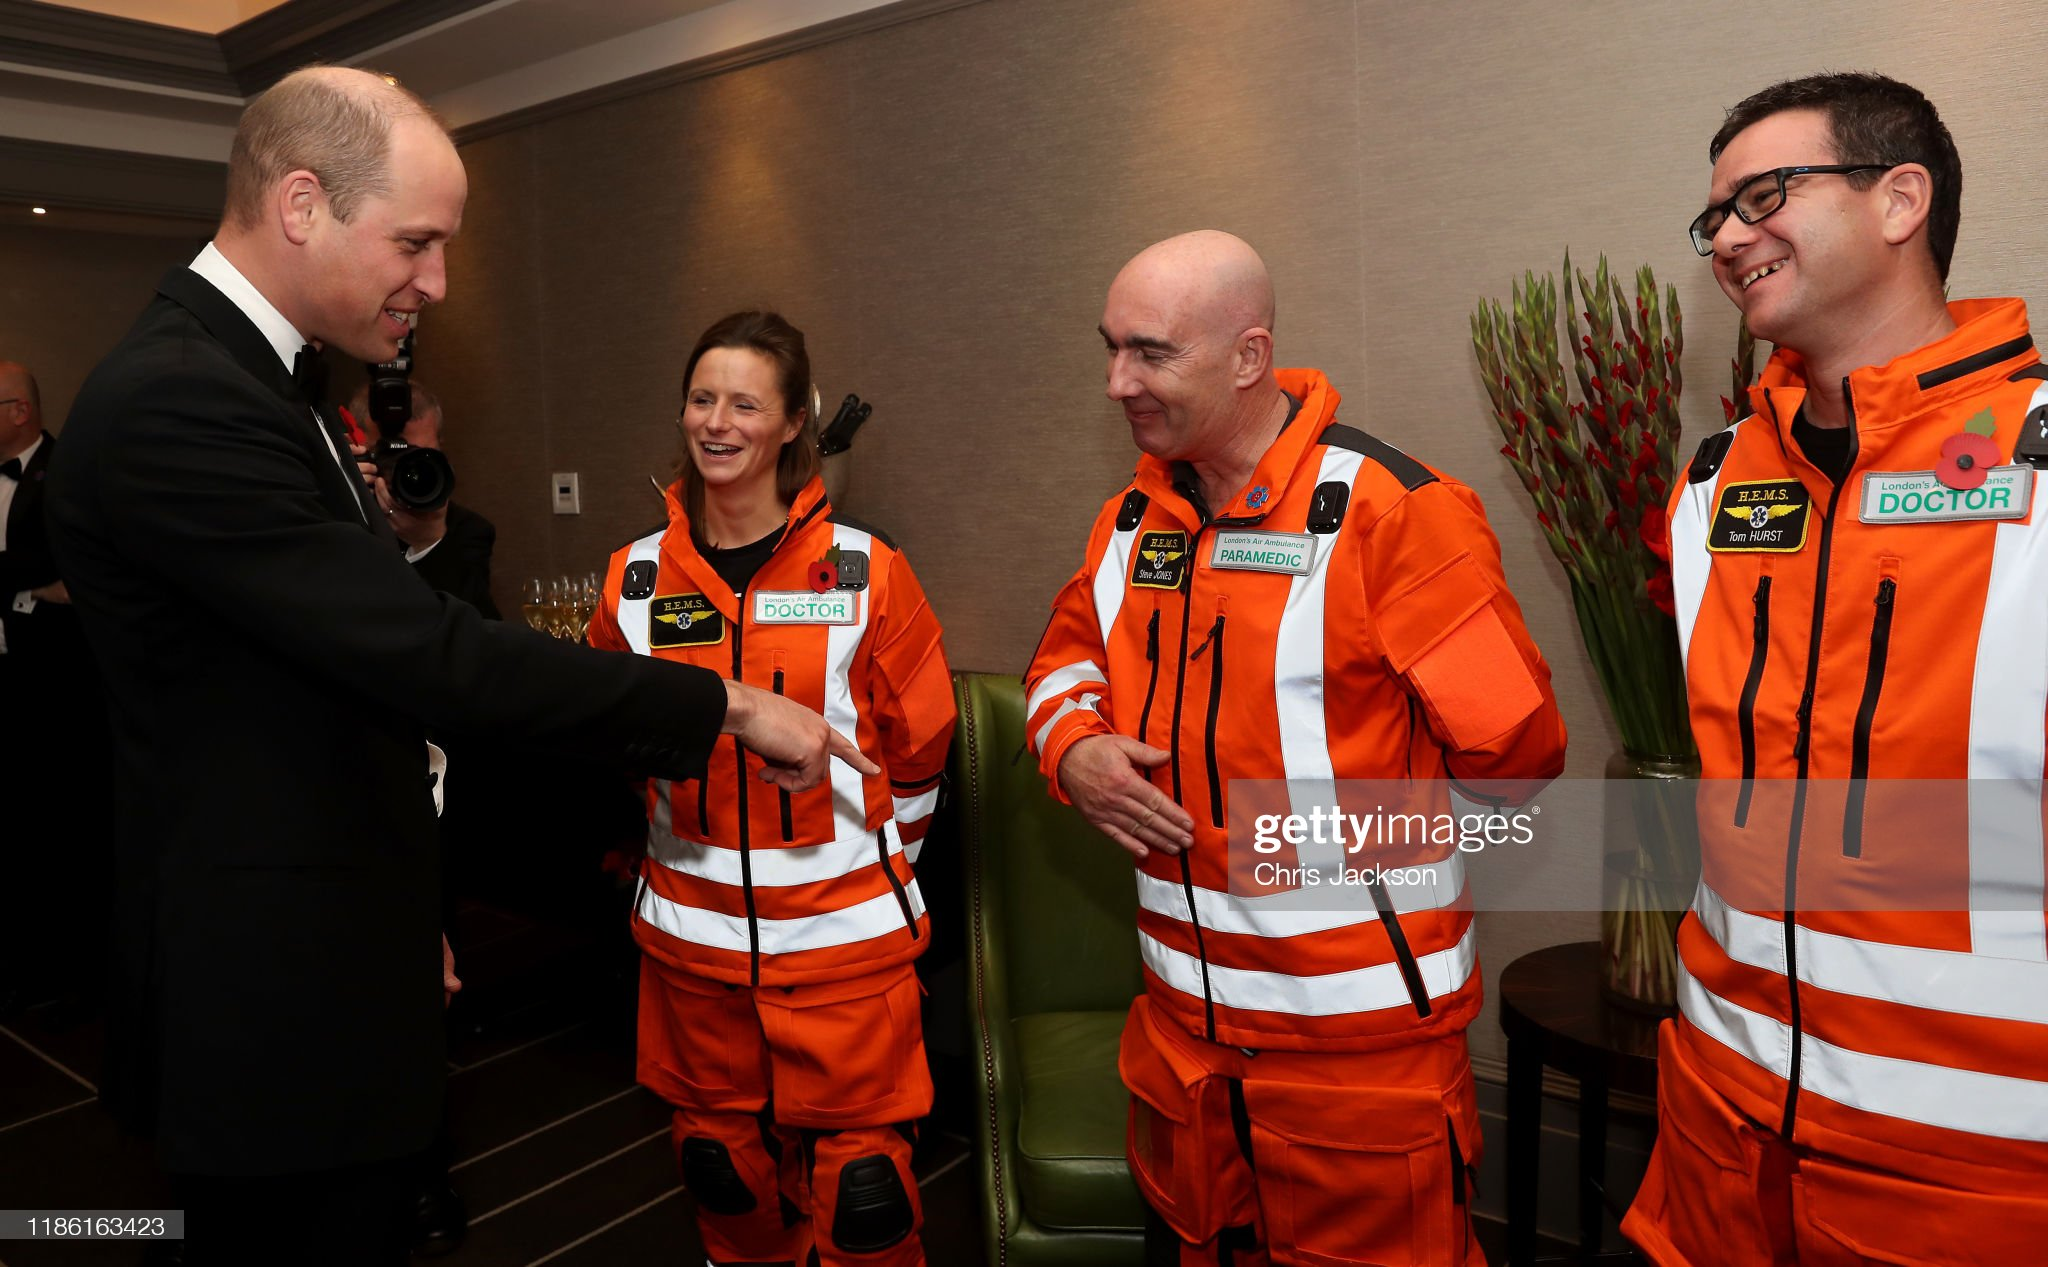 prince-william-duke-of-cambridge-shares-a-joke-with-doctor-flora-bird-picture-id1186163423